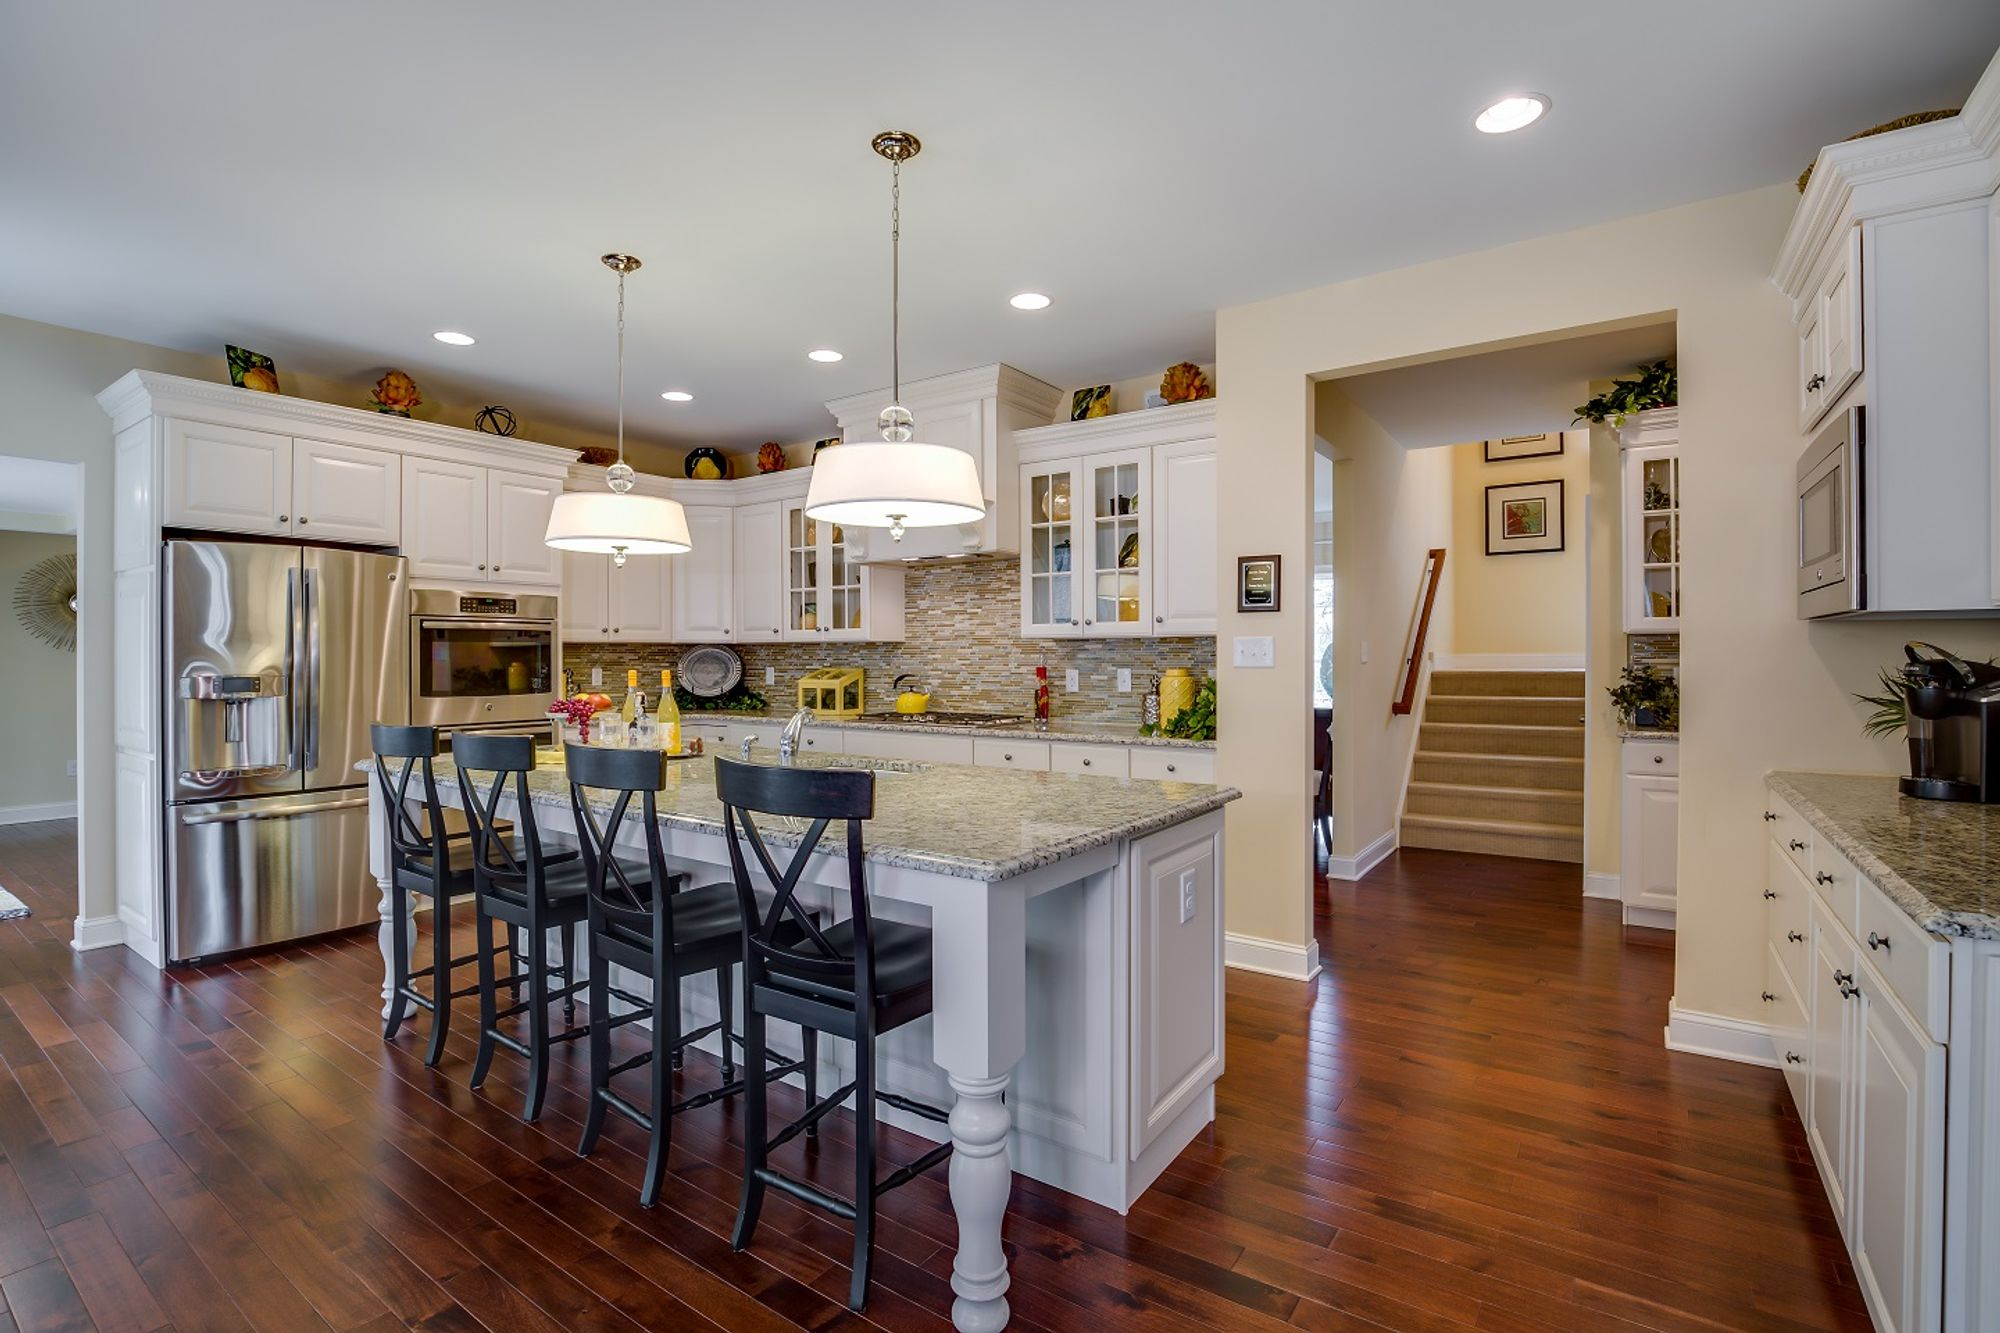 Spacious kitchen with large center island and stainless steel appliances inside the luxurious Brandywine model